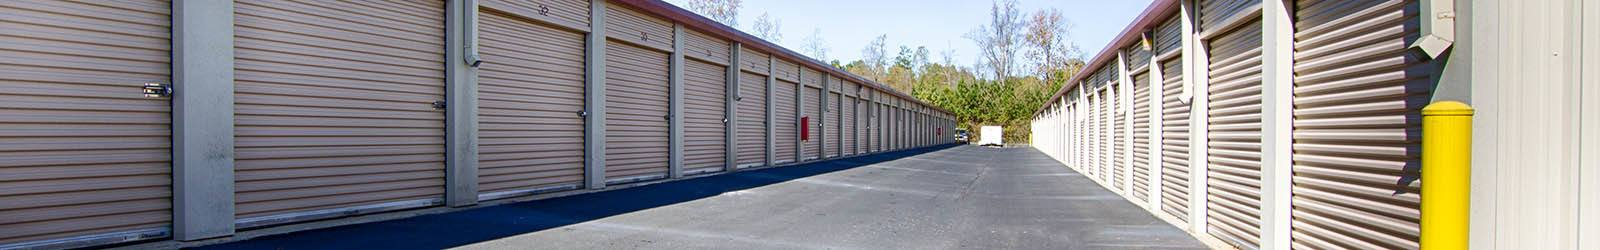 Self Storage Unit Sizes And Prices Offered In Rex